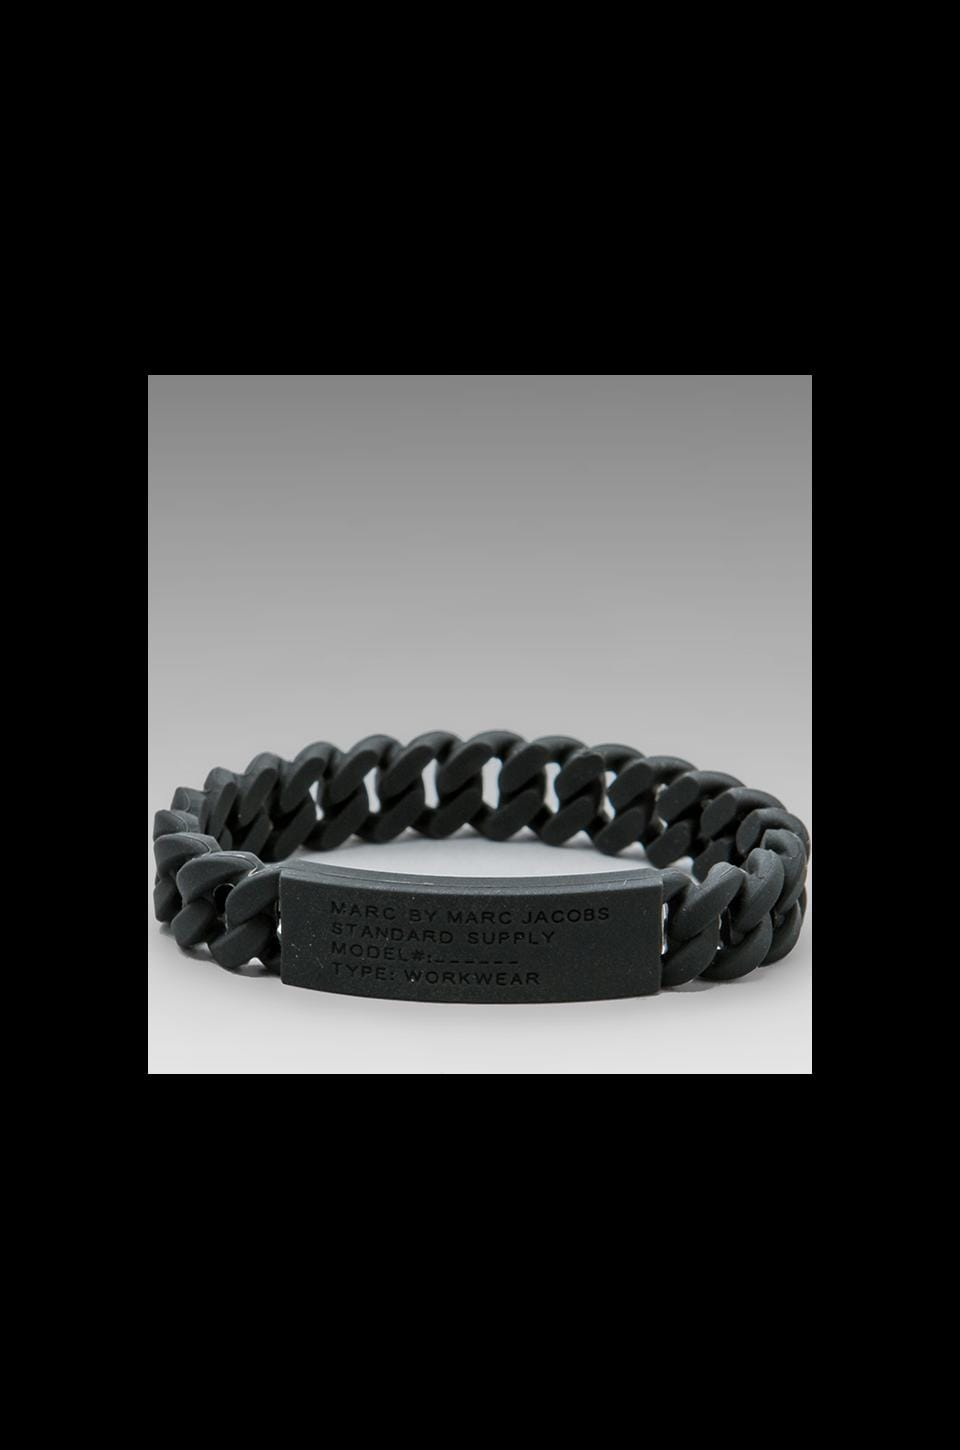 Marc by Marc Jacobs Rubber Standard Supply Bracelet in Black